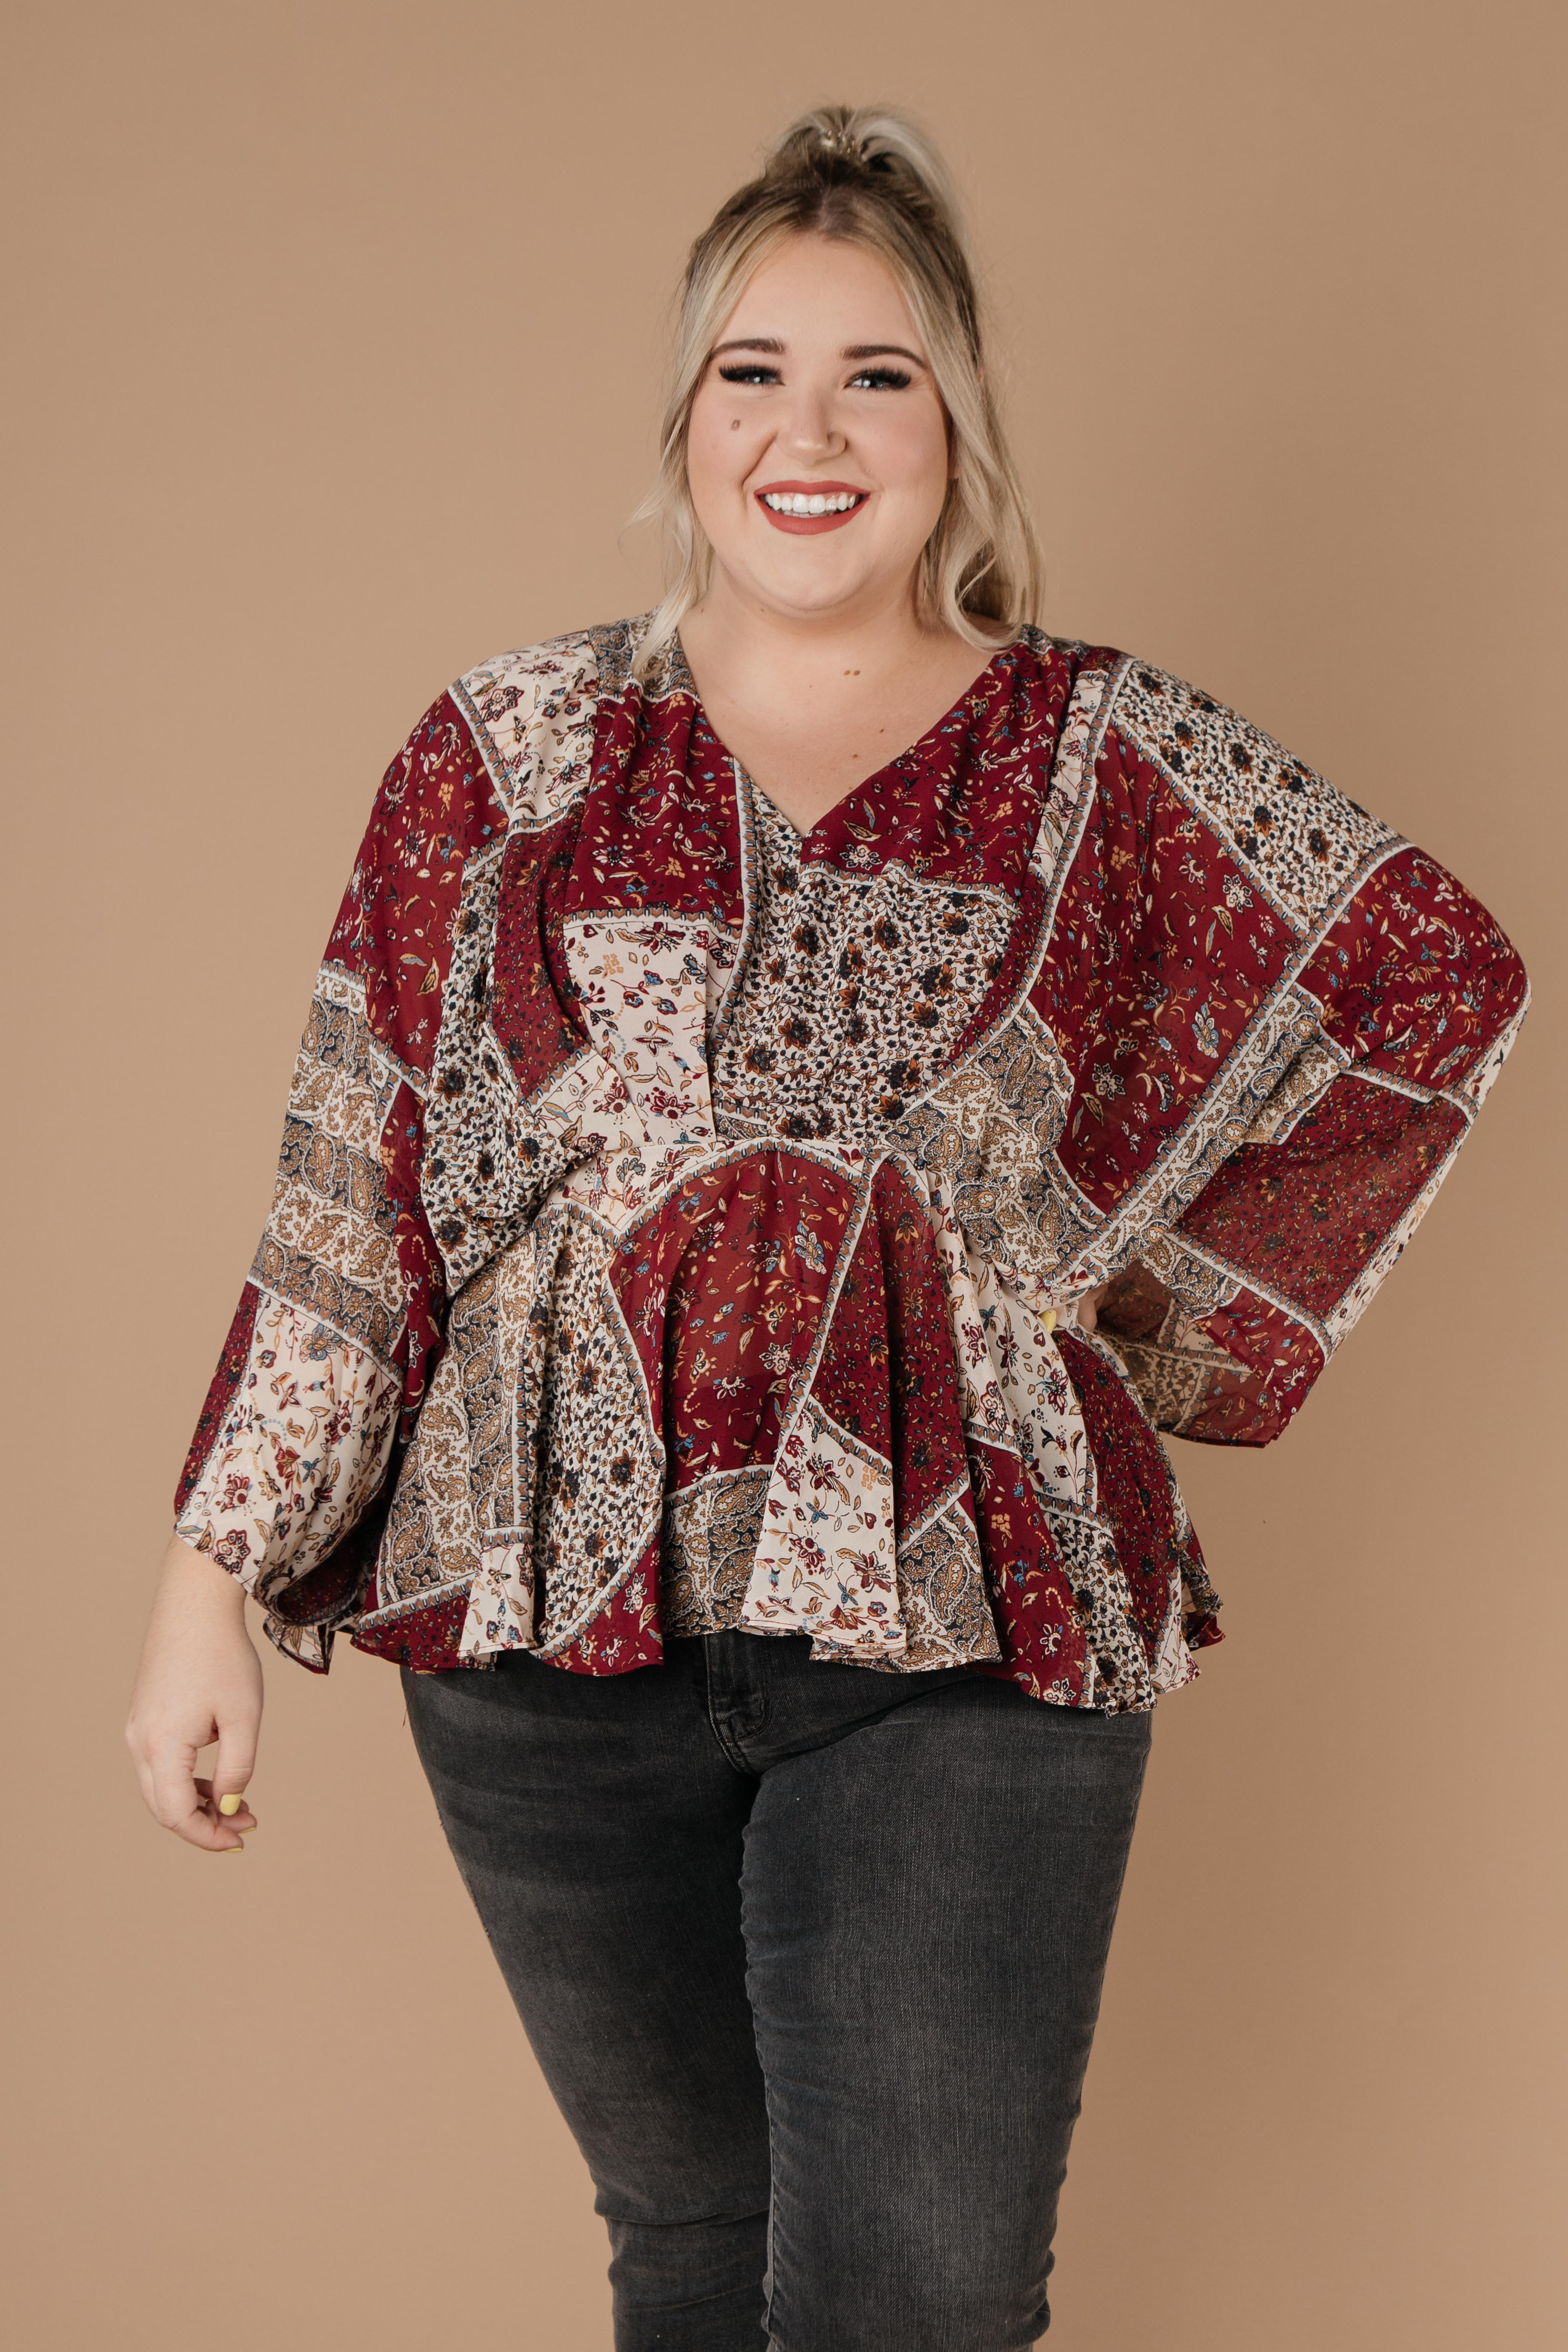 Patch Things Up Date Night Blouse, Womens - Lola Cerina Boutique